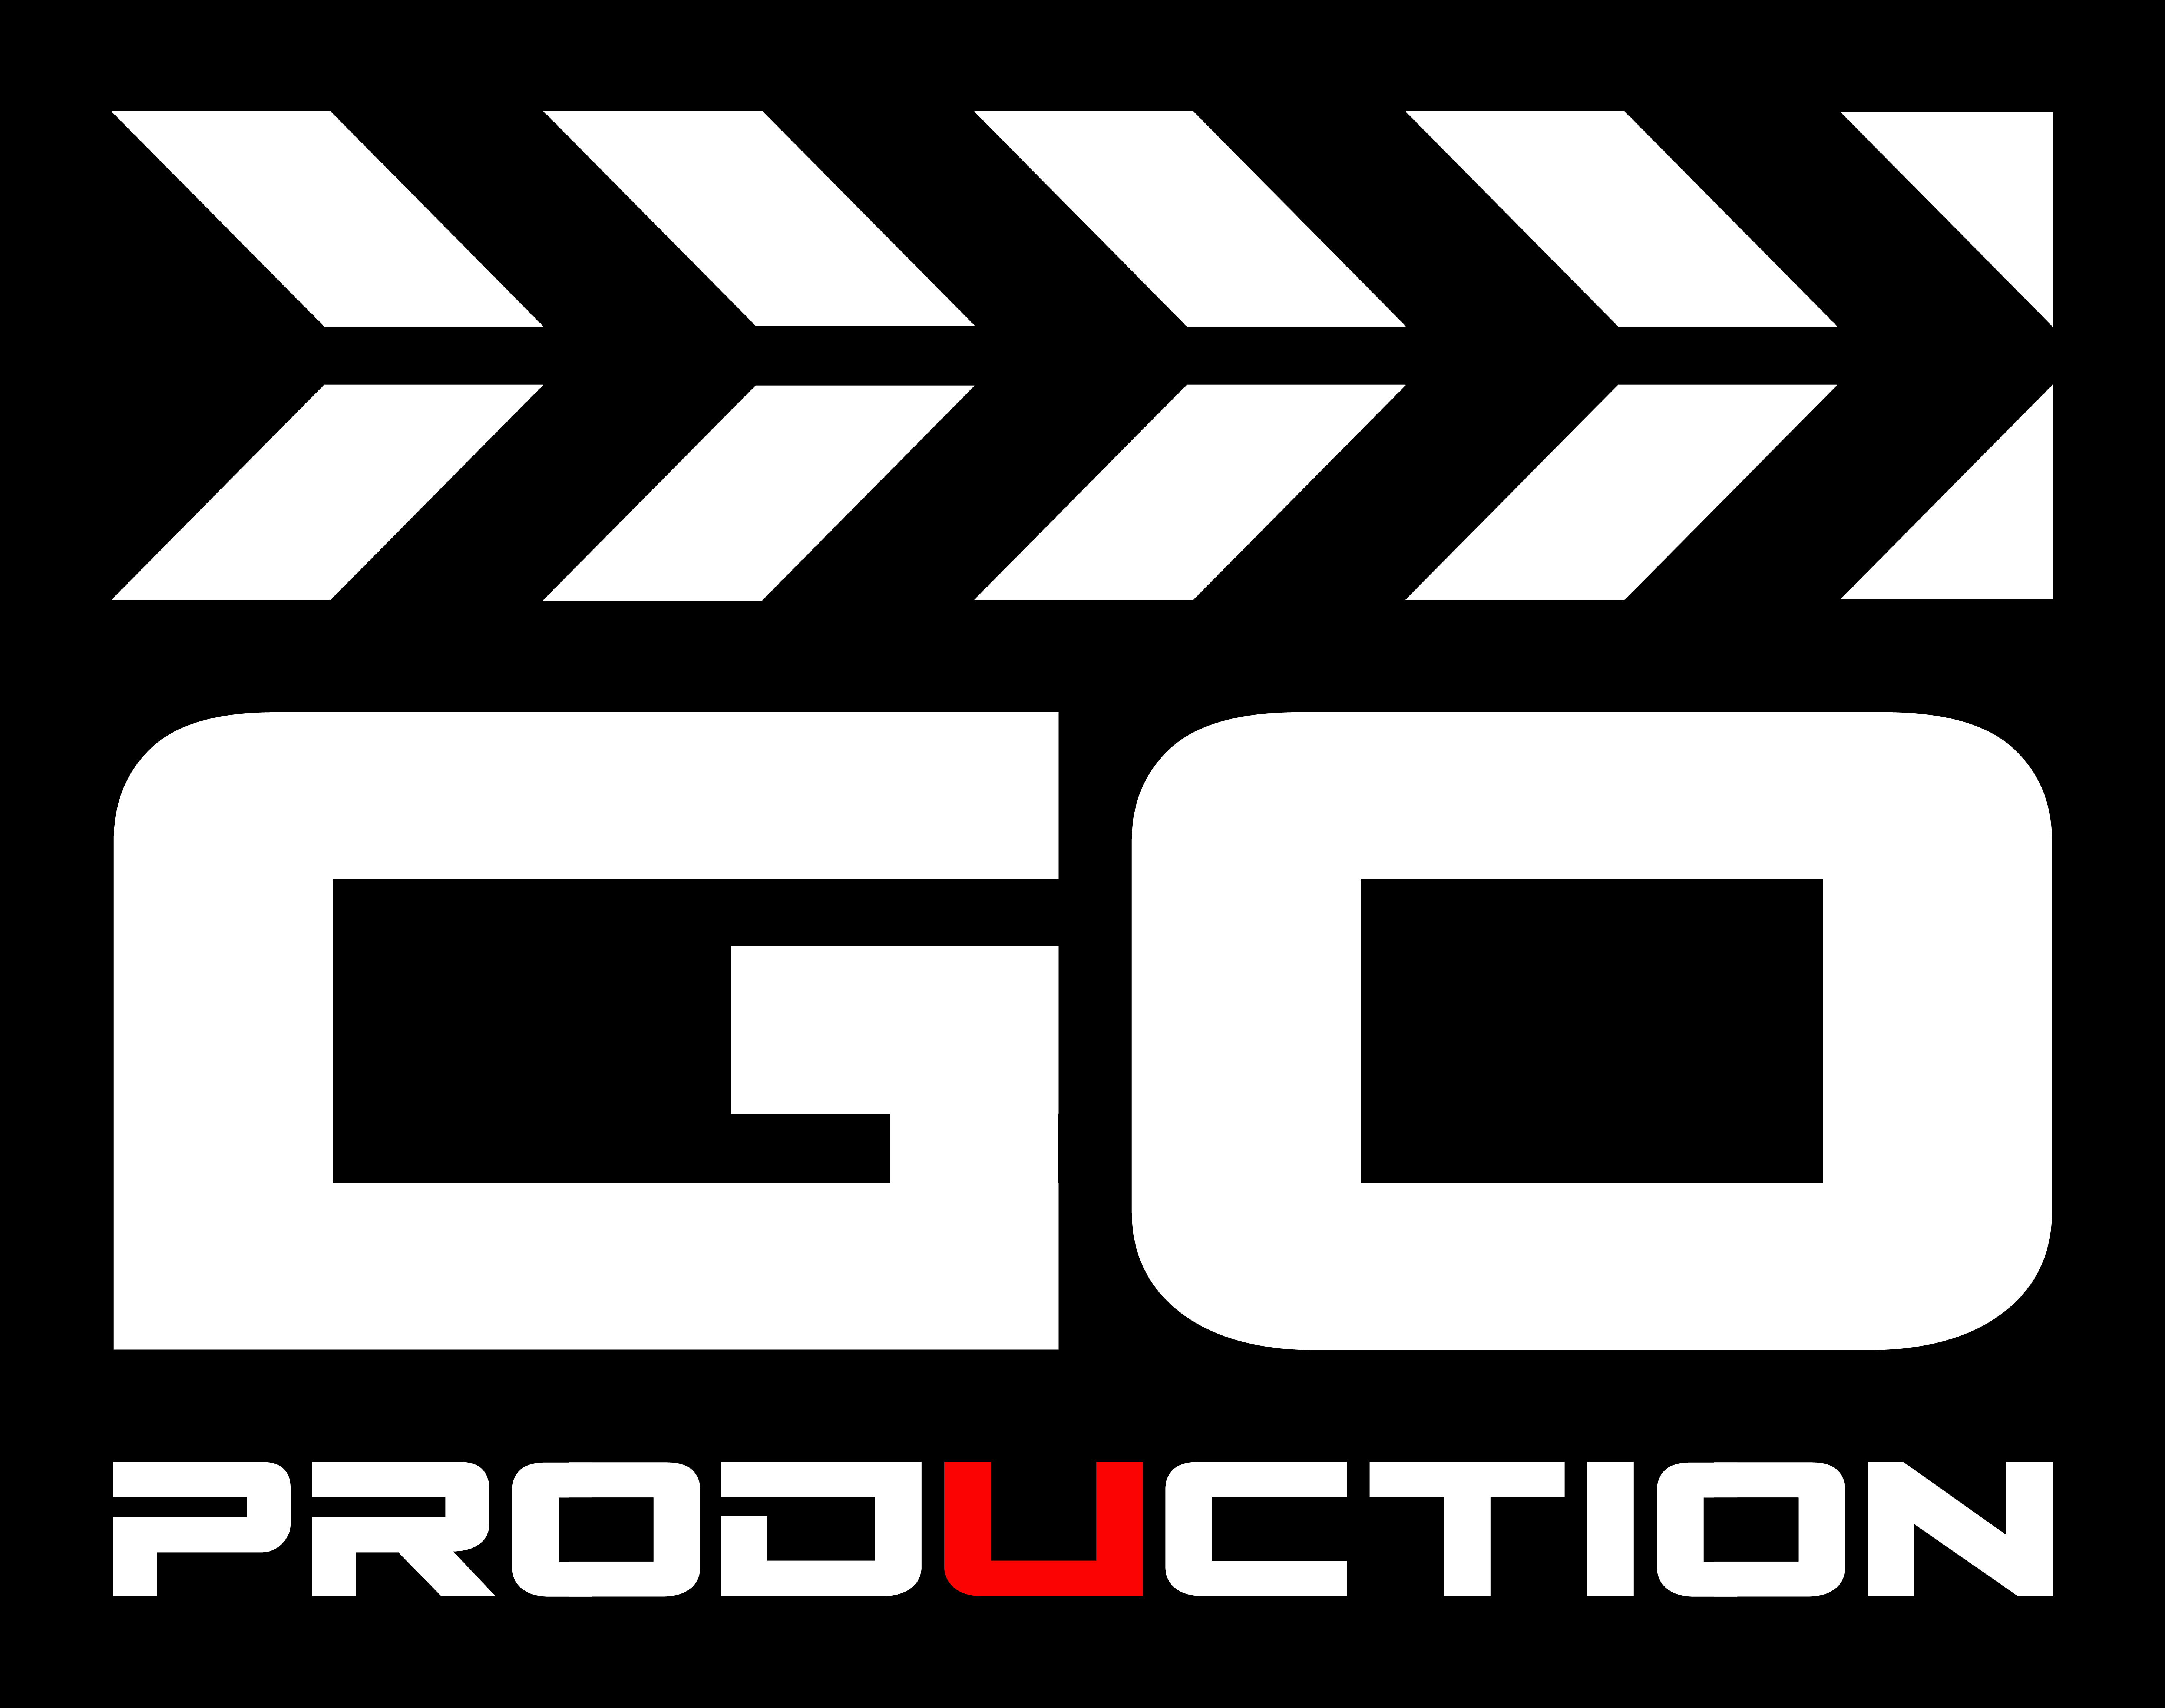 GoProduction